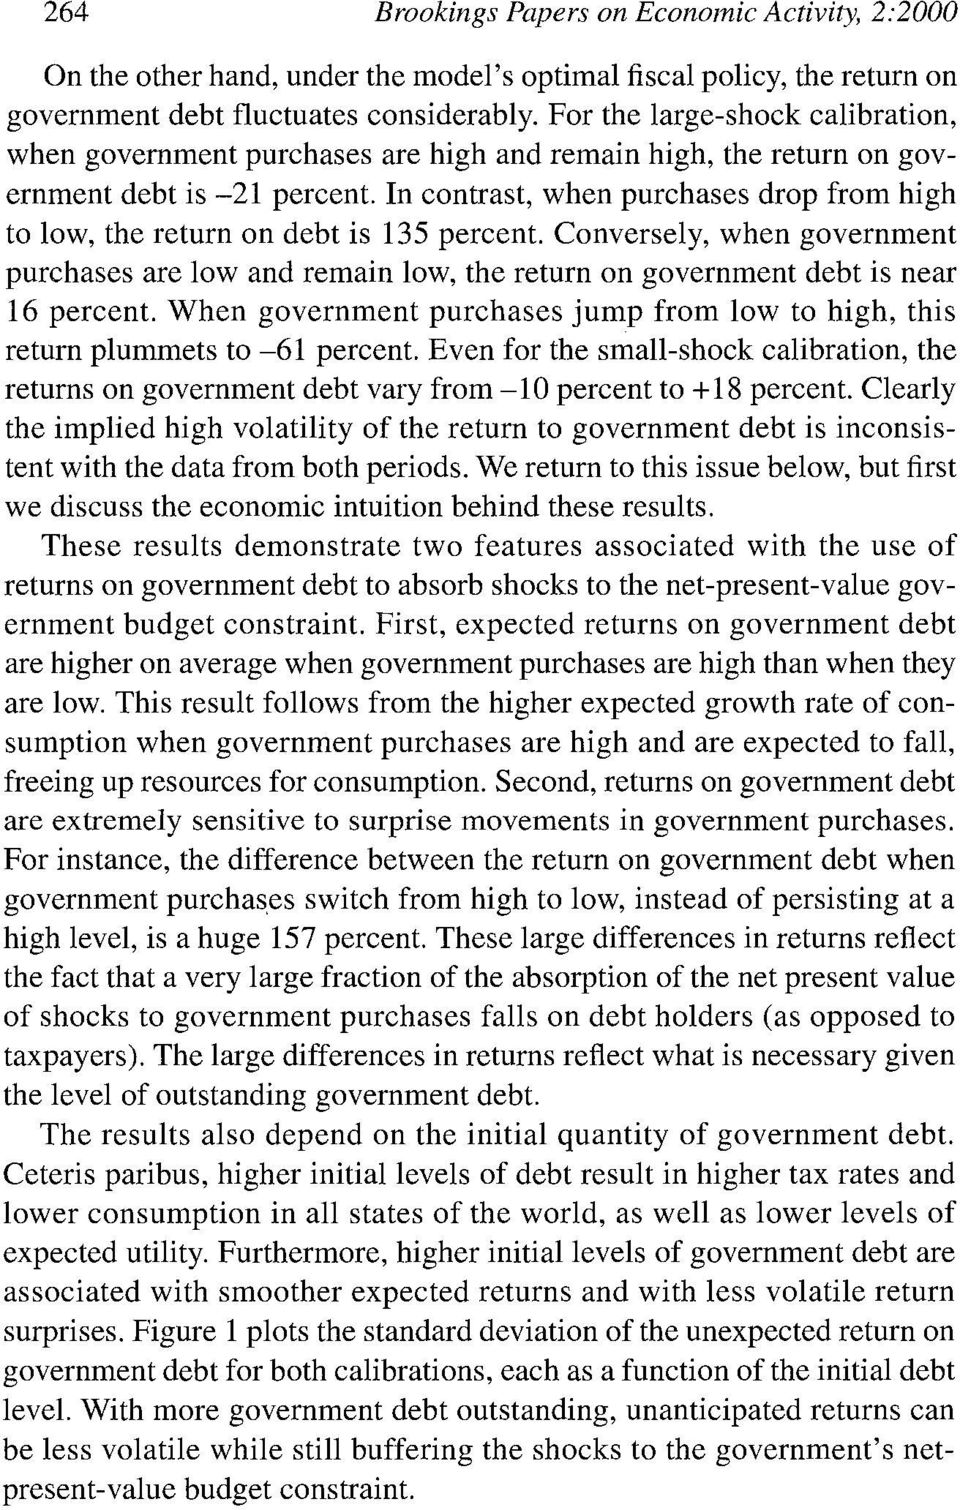 In contrast, when purchases drop from high to low, the return on debt is 135 percent. Conversely, when government purchases are low and remain low, the return on government debt is near 16 percent.